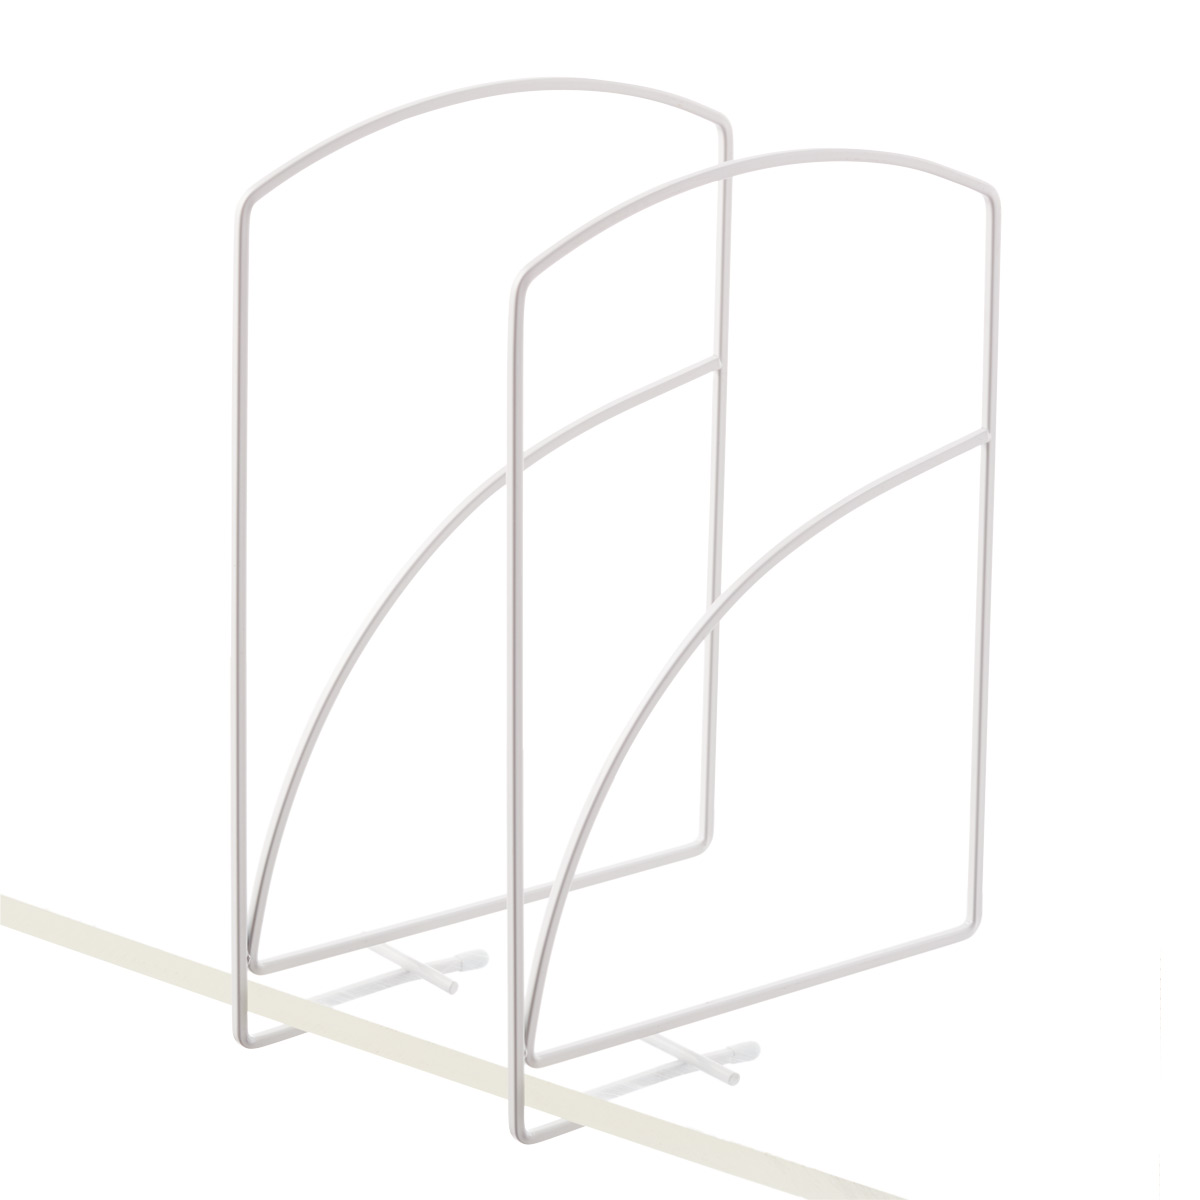 Wonderful Walmart Wire Shelf Dividers Images - Electrical System ...